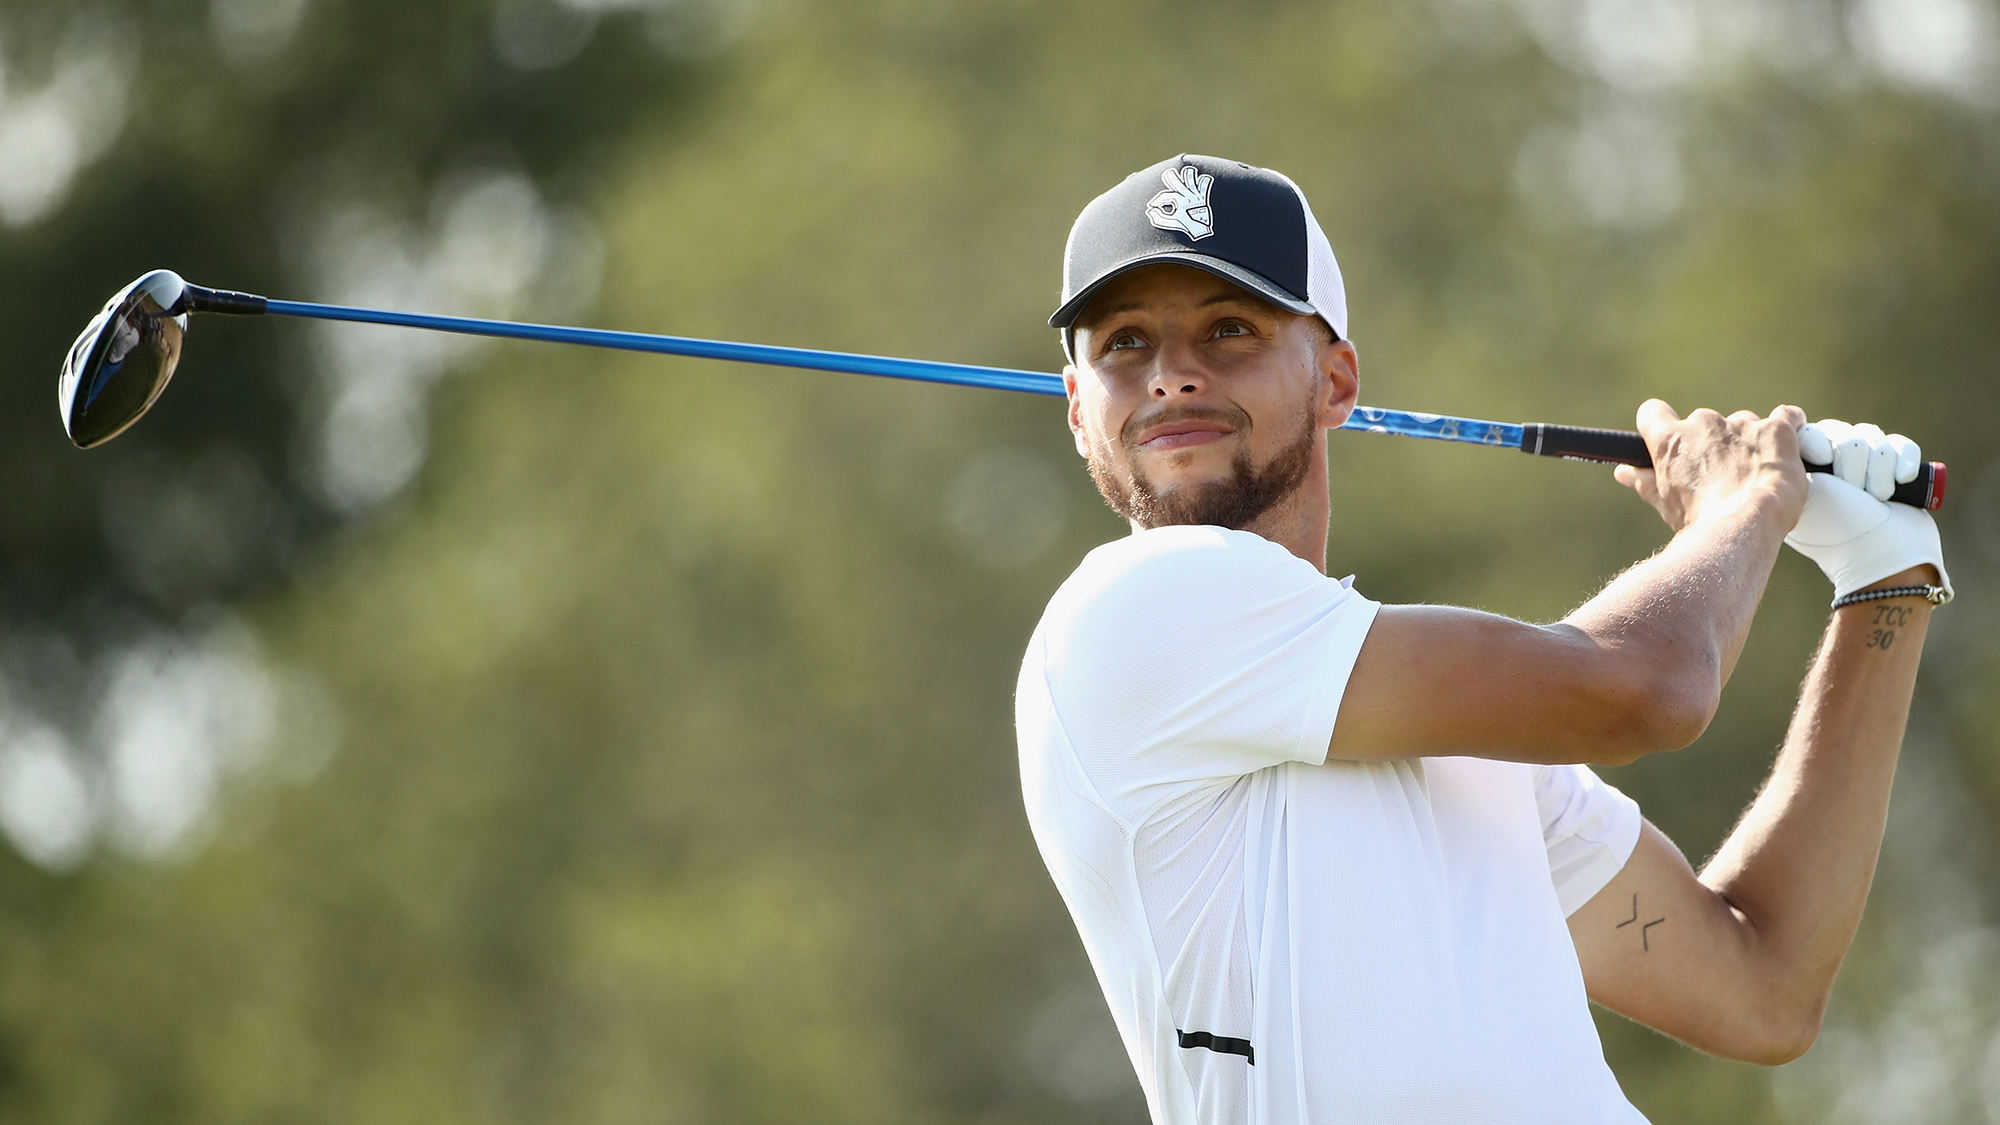 stephen curry pga tour event host cancelled lake merced